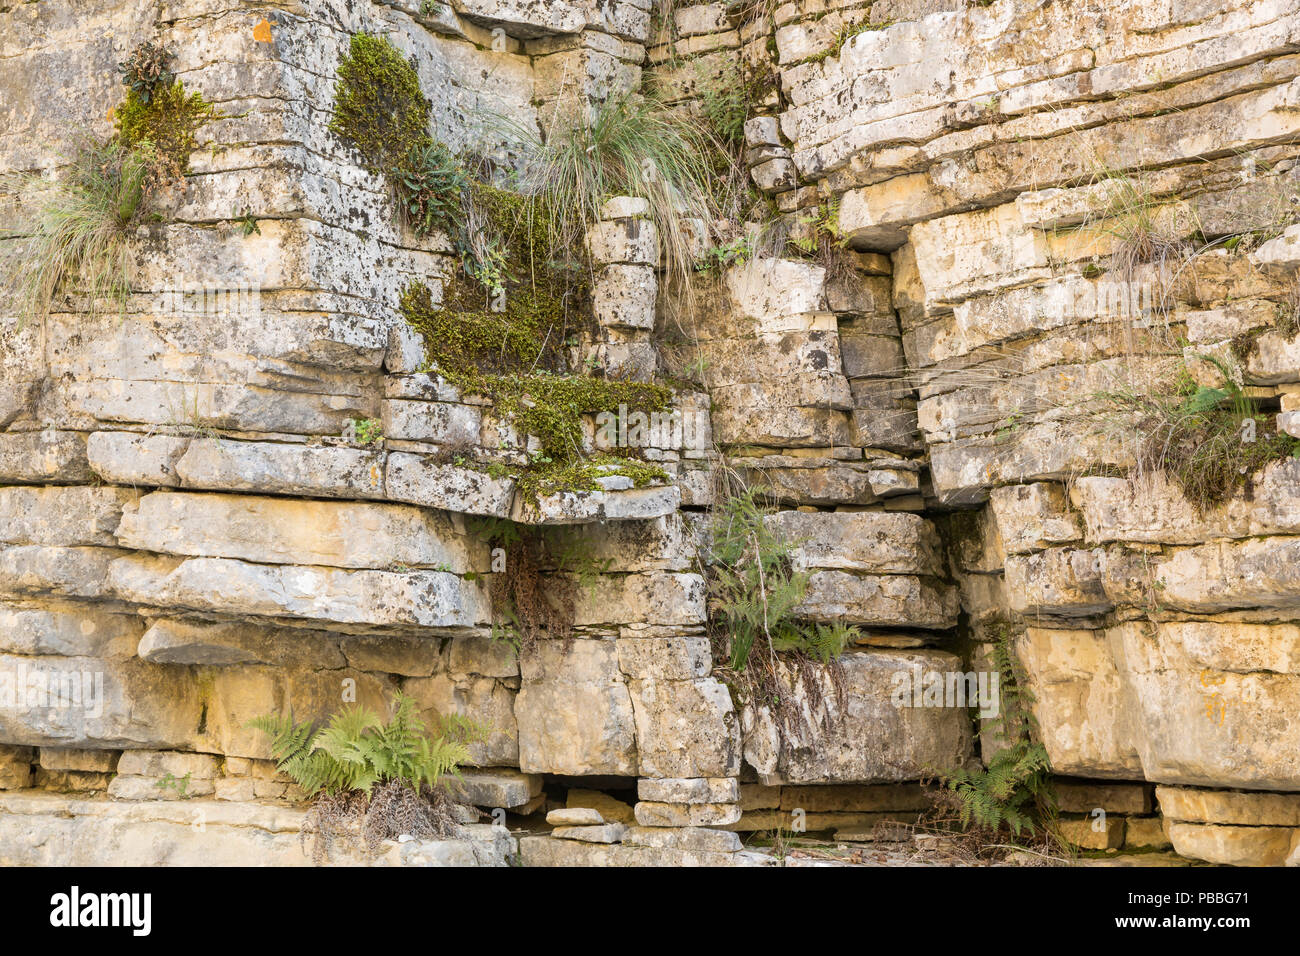 Plants thriving on a barren rock face - Stock Image